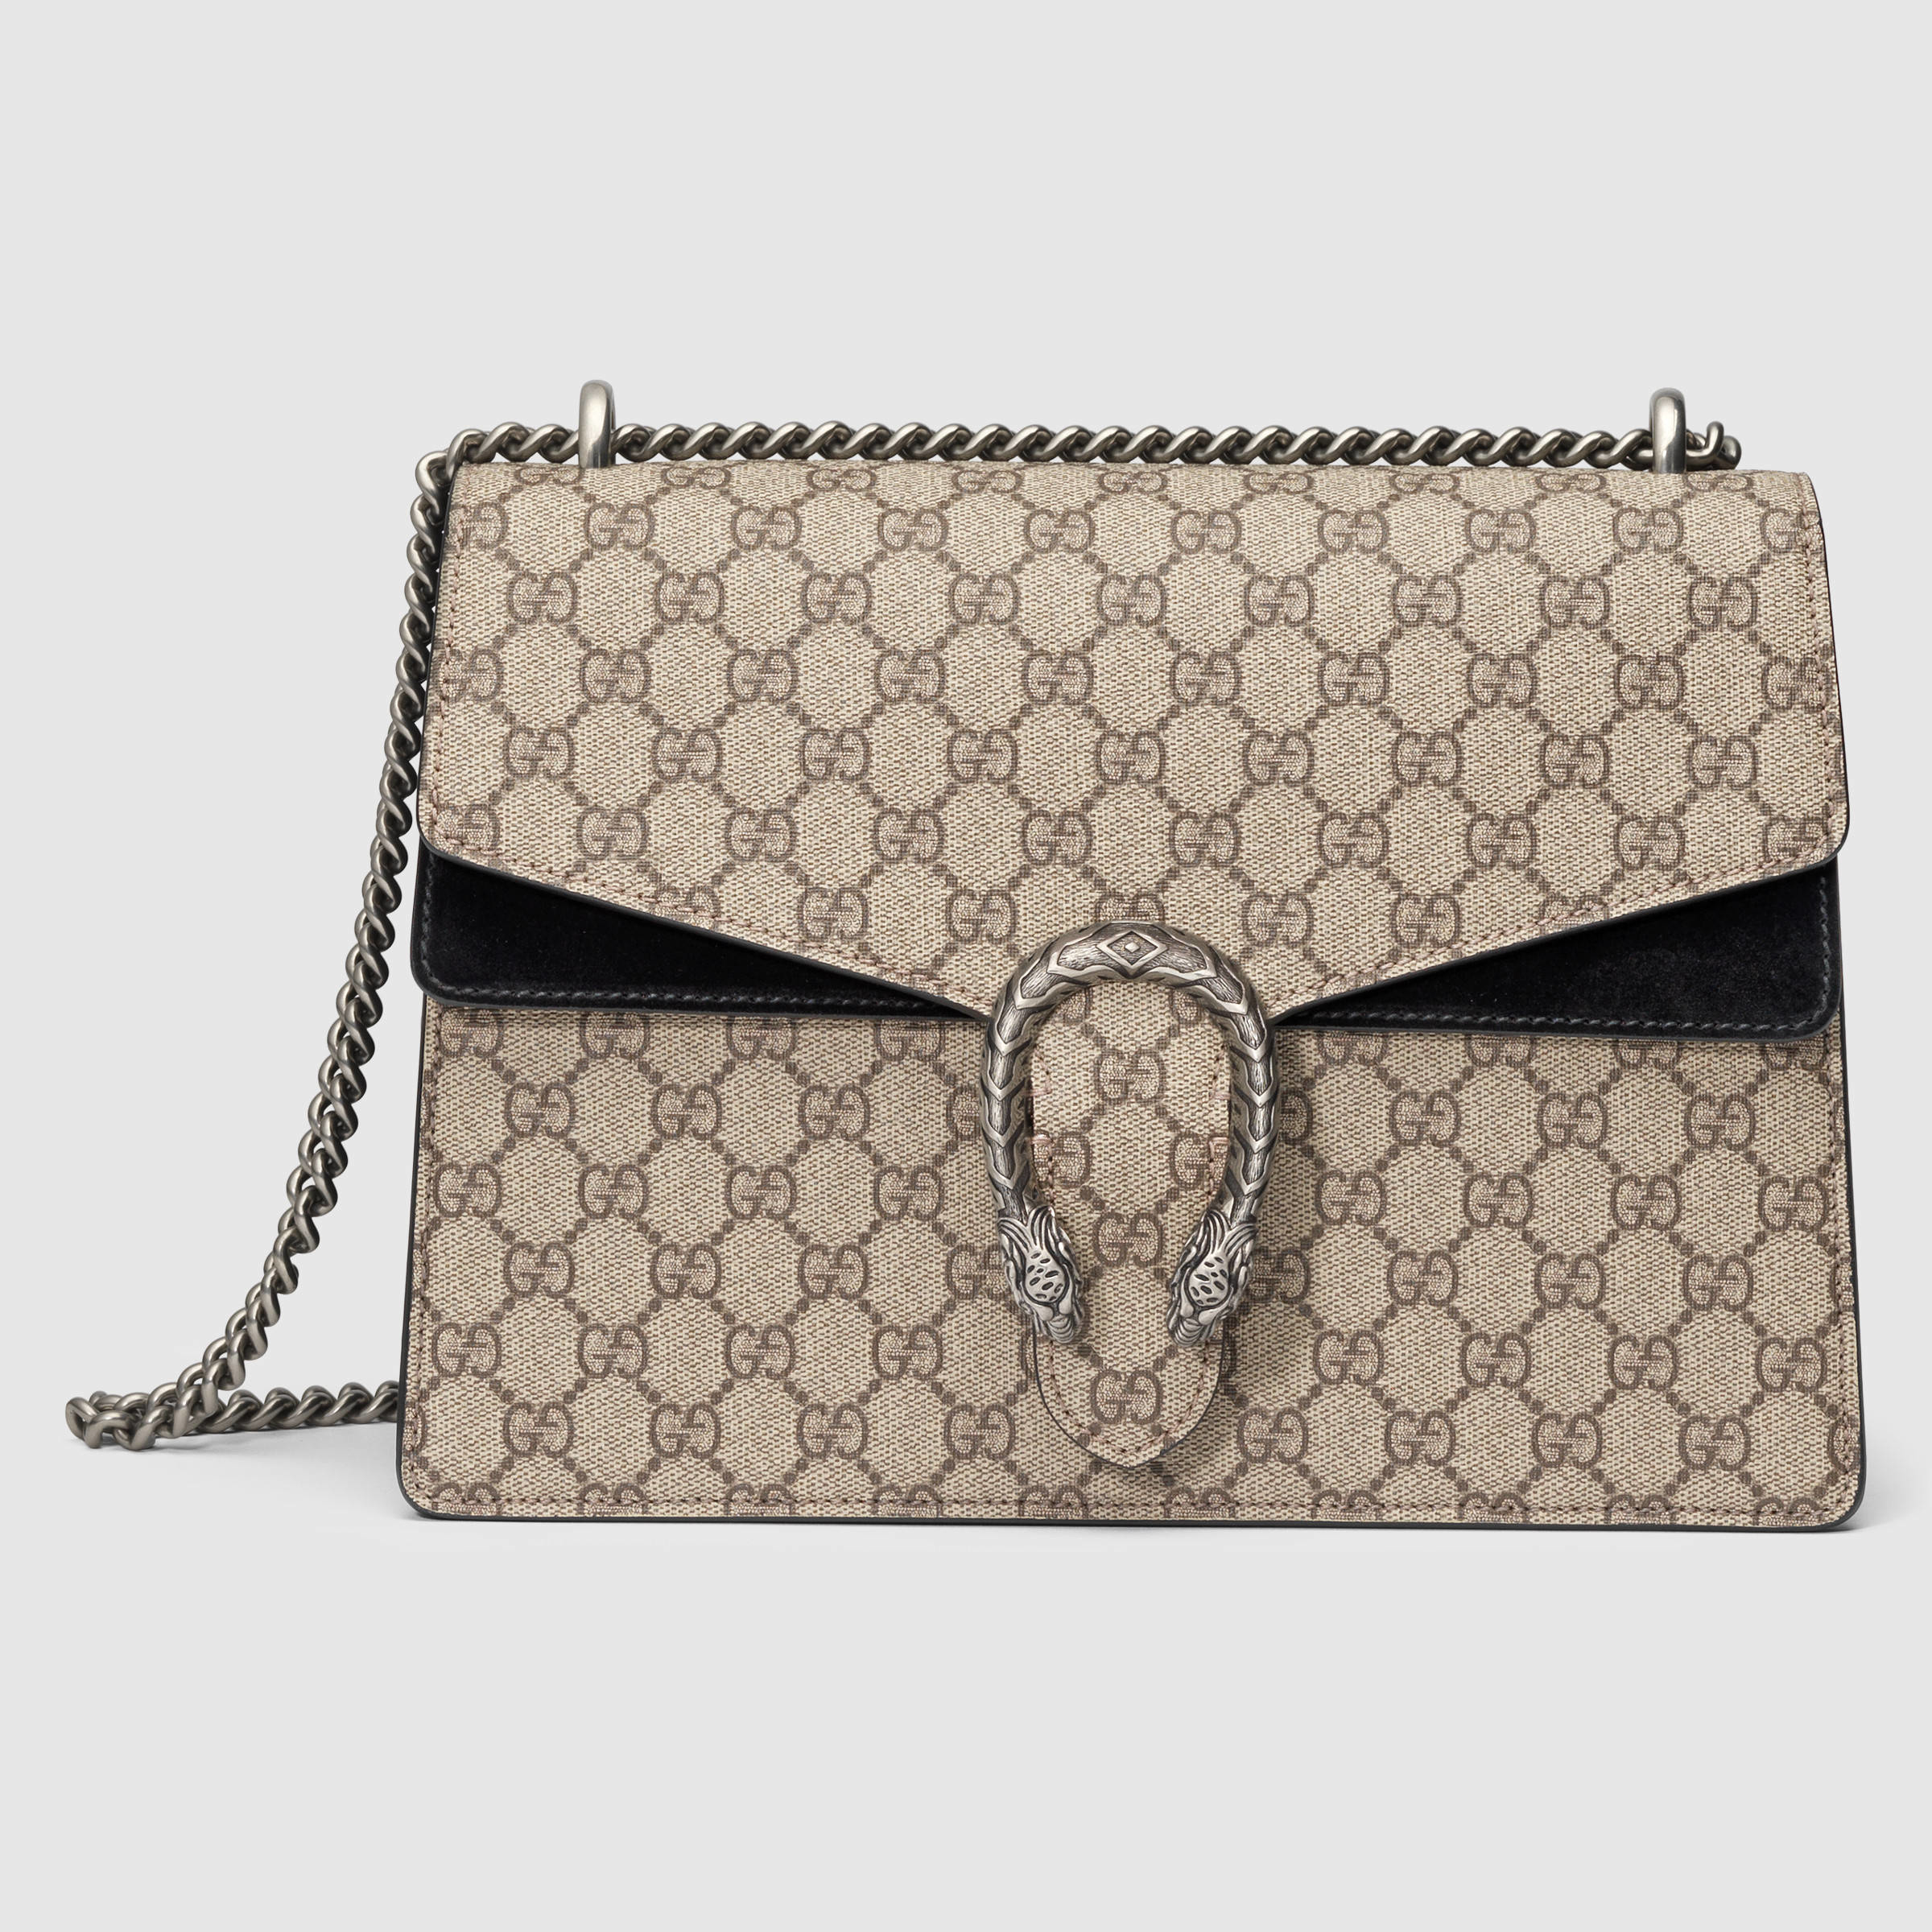 Gucci Dionysus GG Supreme Shoulder Bag In Gray Lyst